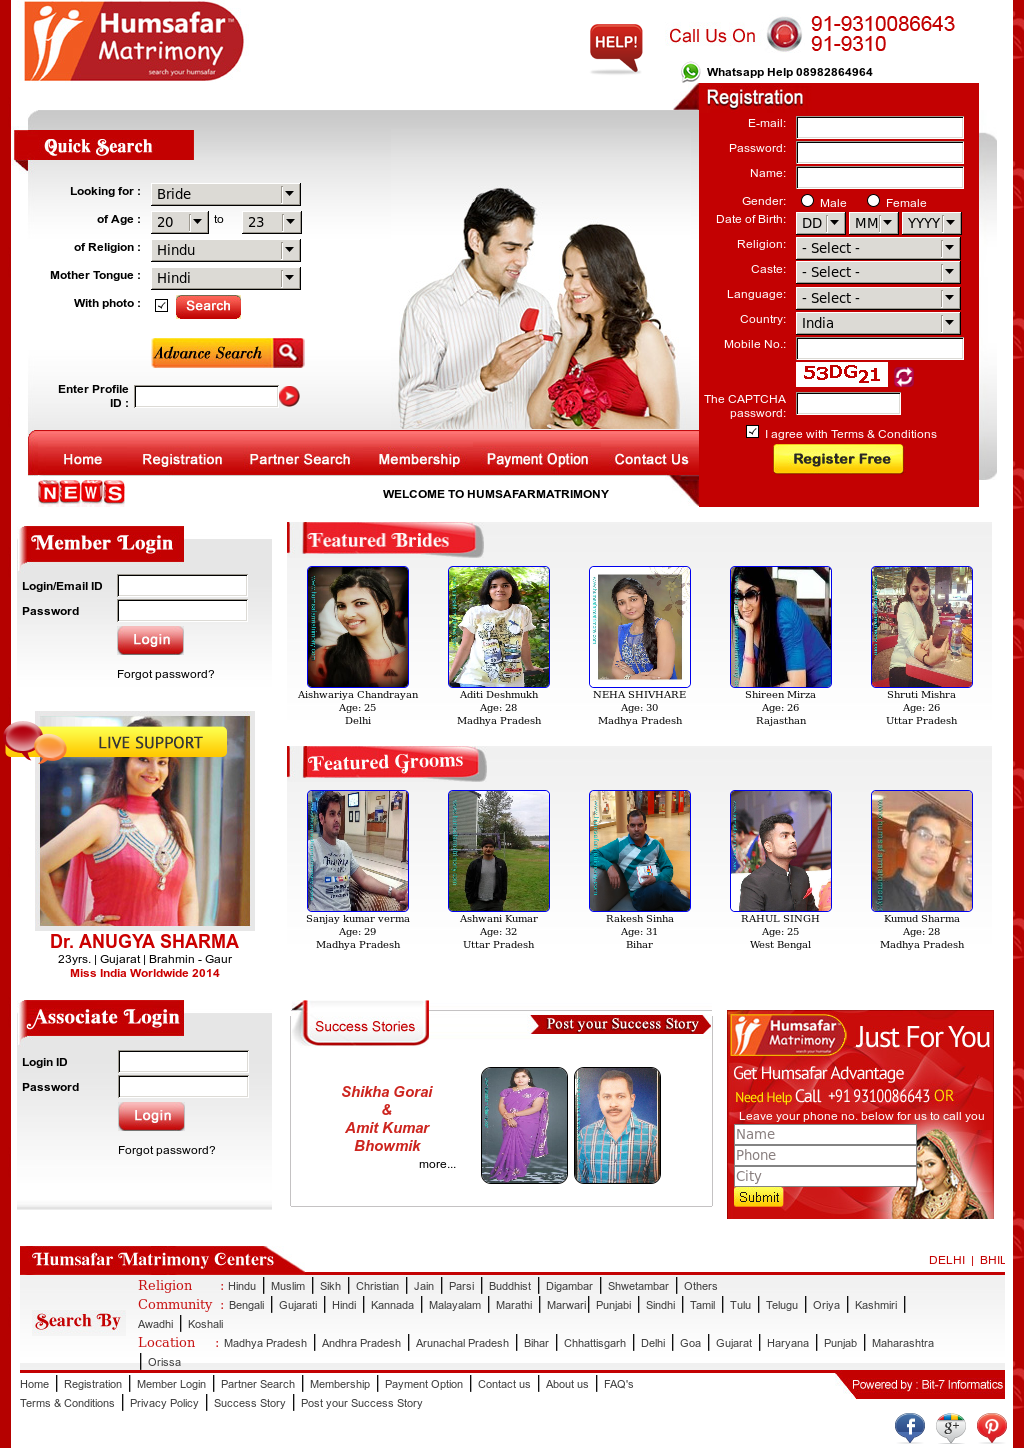 Humsafar Matrimony Competitors, Revenue and Employees - Owler